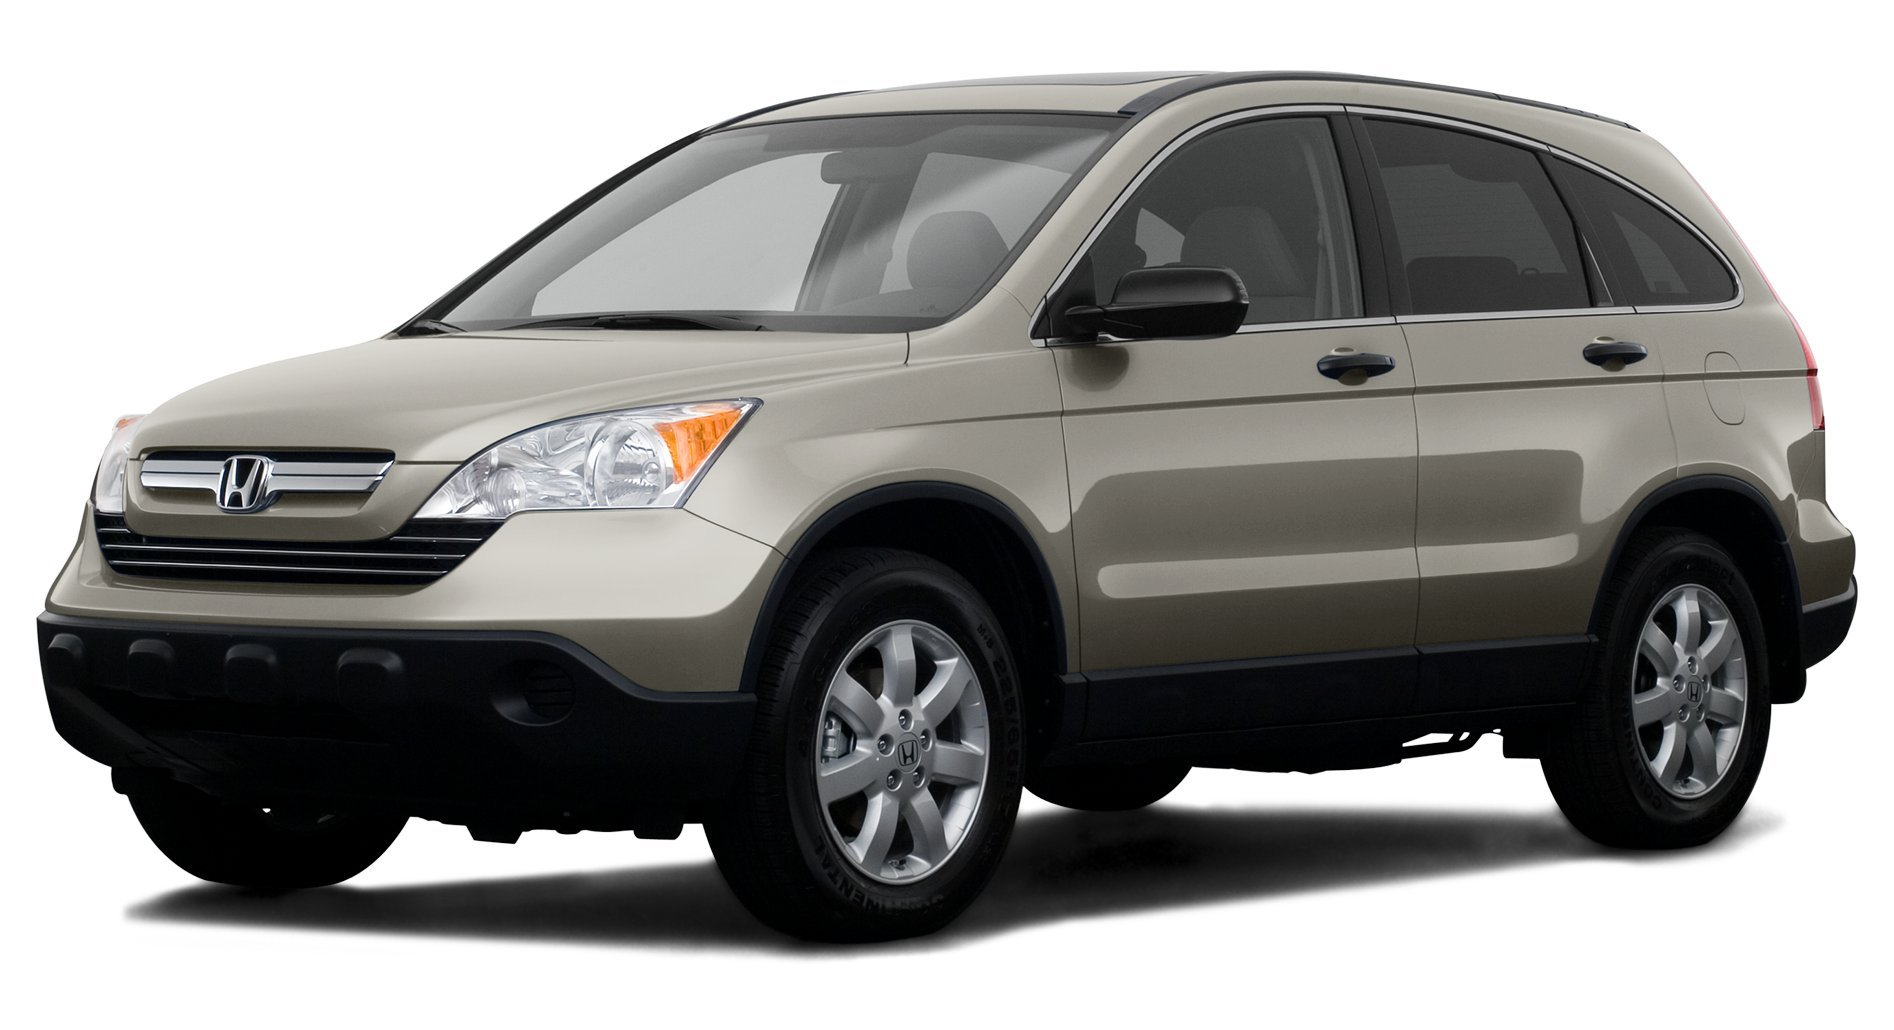 71AbPLLluvL amazon com 2008 honda cr v reviews, images, and specs vehicles 2014 Honda CR-V at crackthecode.co